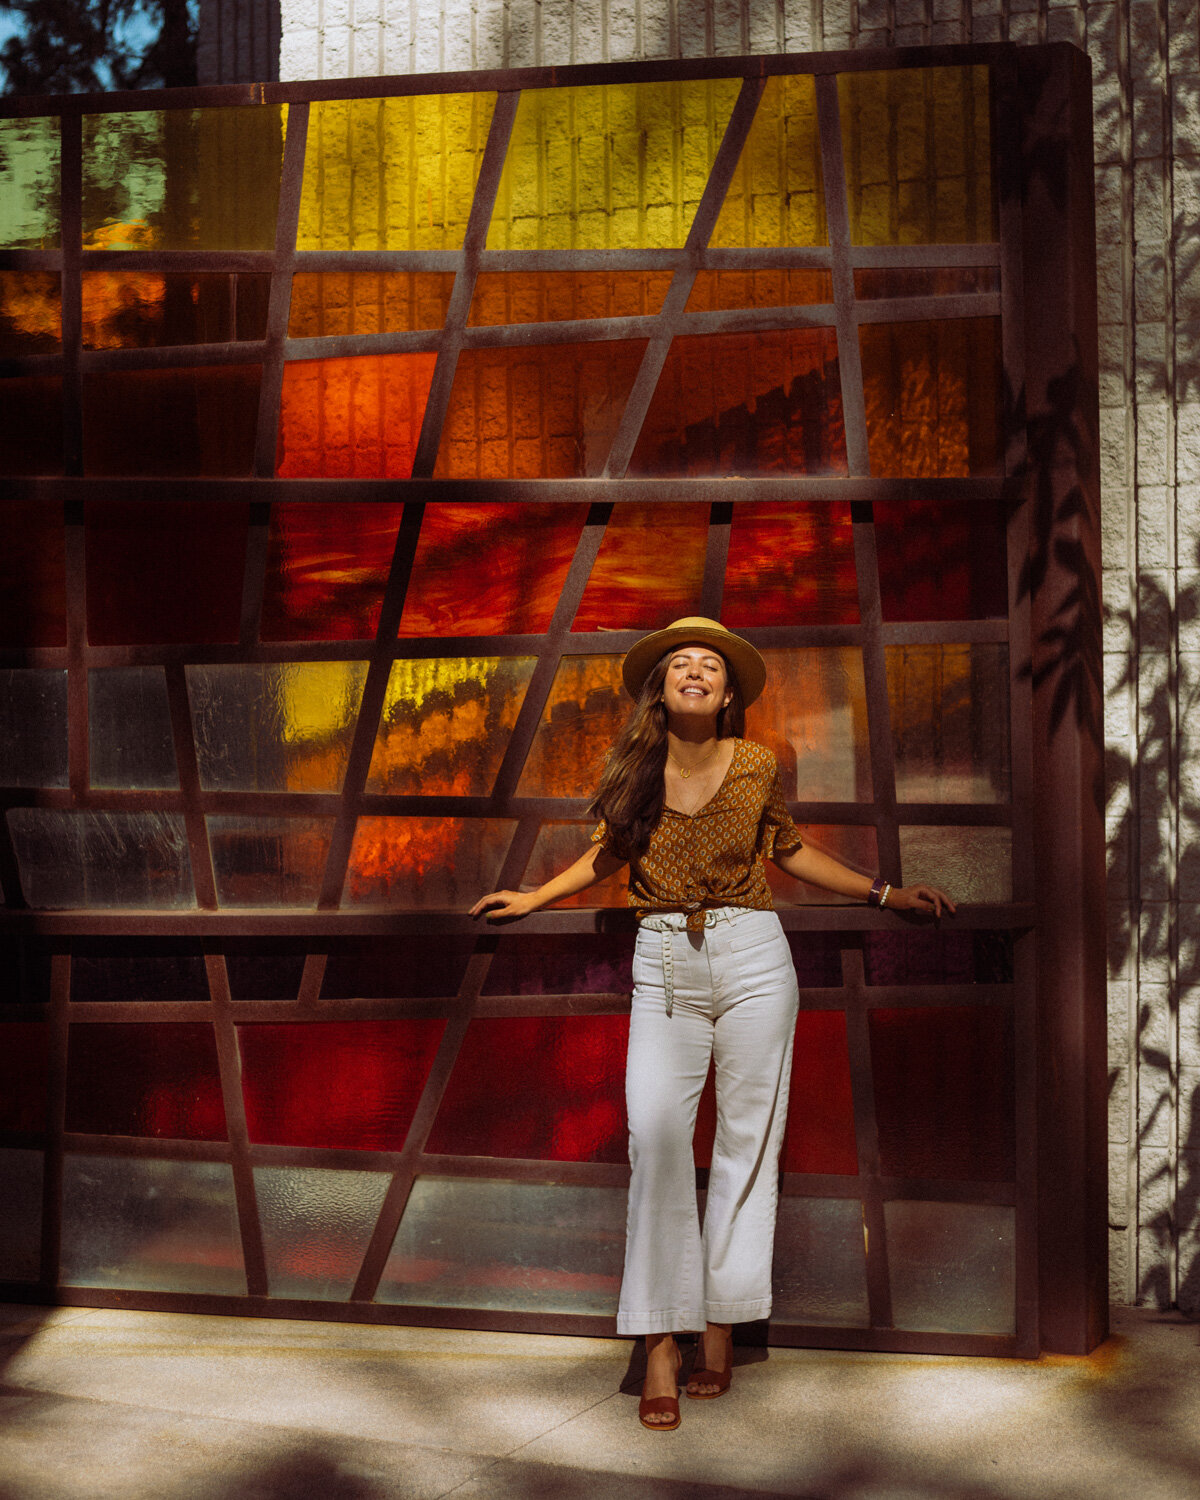 Rachel Off Duty: A Woman Smiling in Front of a Red, Orange, and Yellow Glass Art Piece